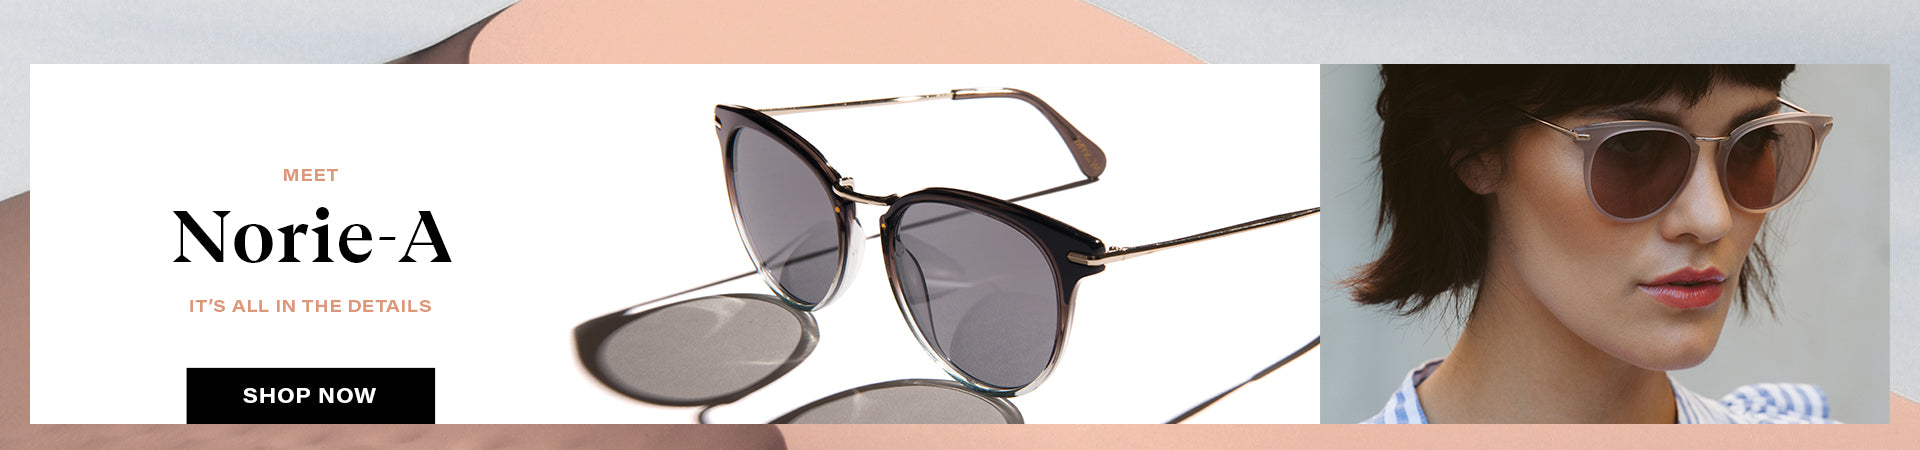 Women's Sale Sunglasses